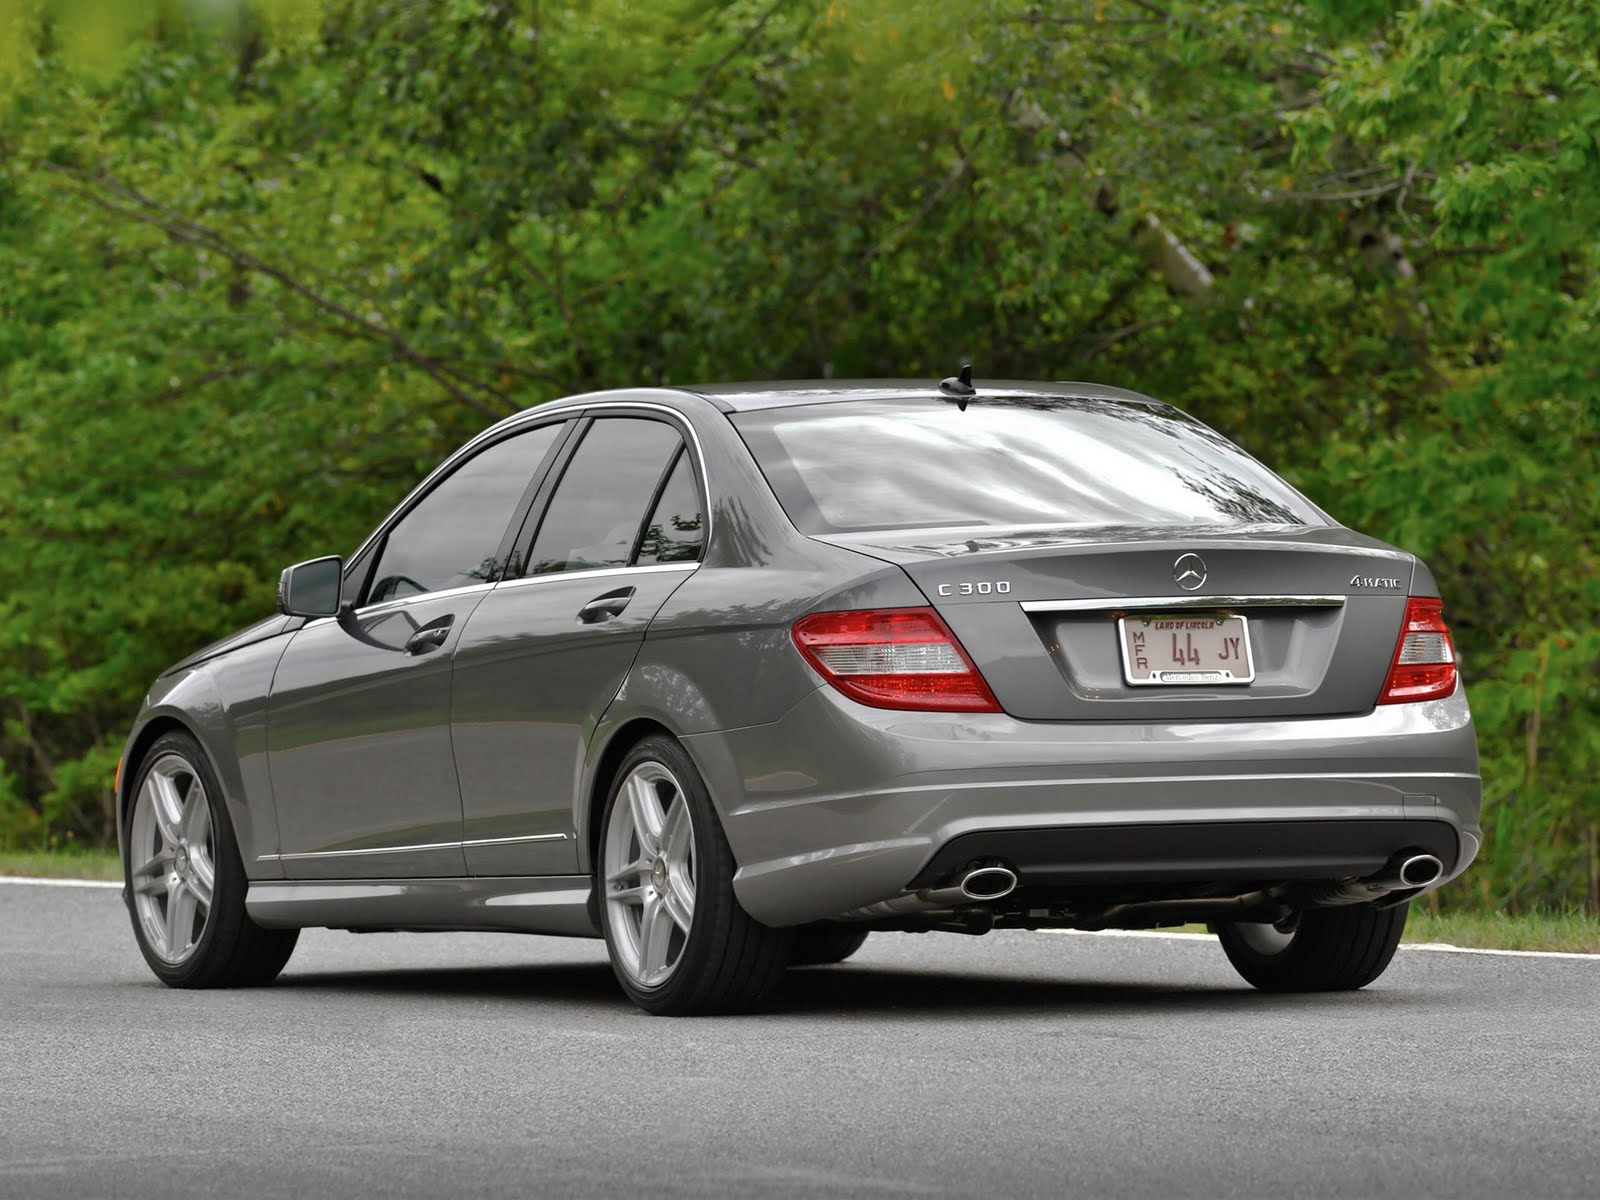 Drag race thailand 2011 mercedes benz c class c300 for 2011 mercedes benz c class c300